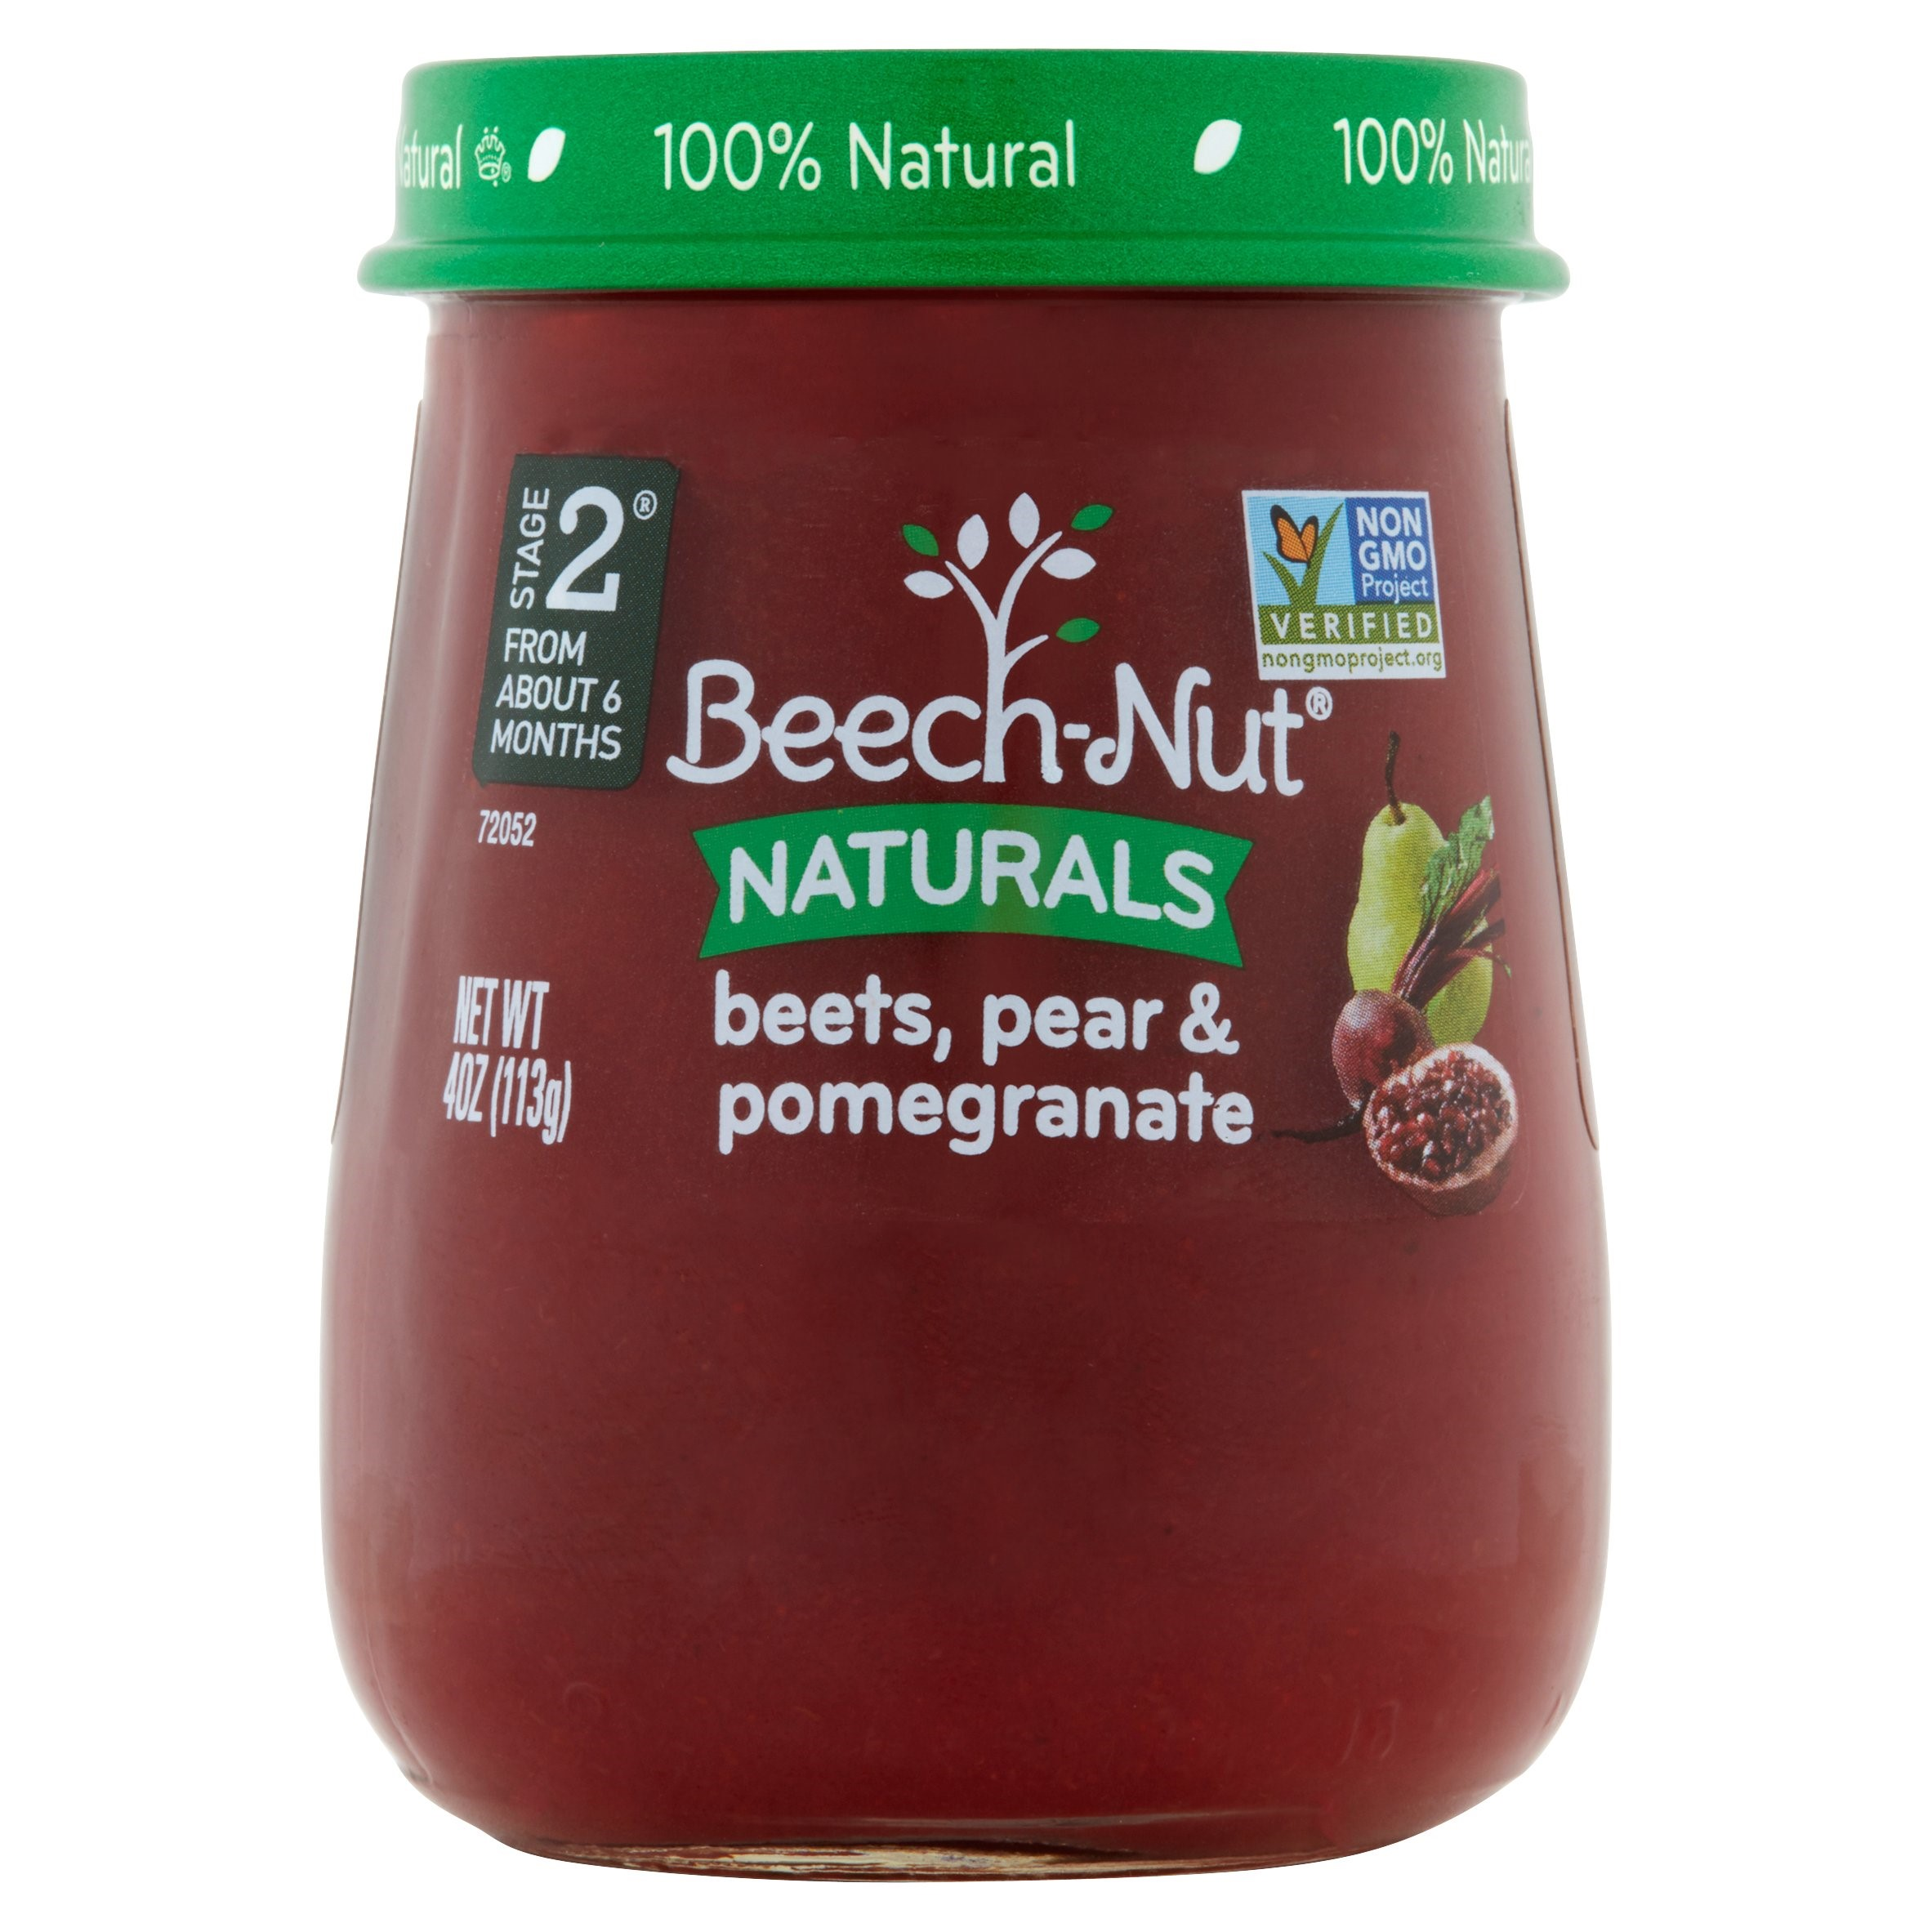 Beech-Nut Naturals Beets, Pear & Pomegranate Stage 2 from About 6 Months, 4 oz, 10 count